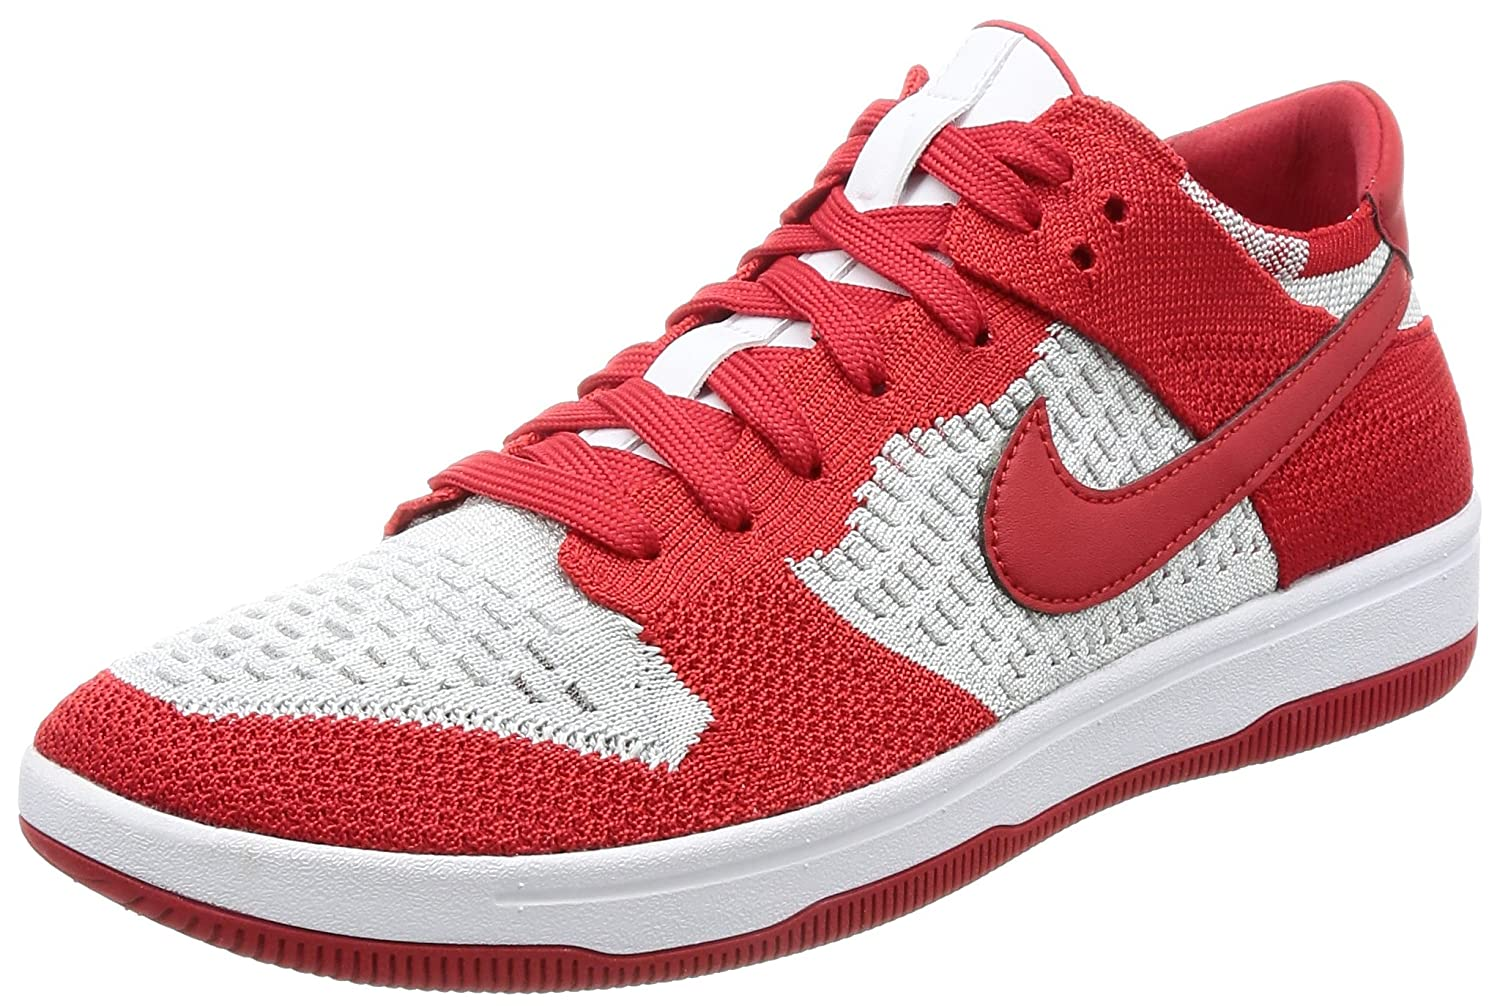 NIKE Men's Dunk Flyknit Ankle-High Basketball Shoe B0723BD61H 8.5 D(M) US|University Red/White-Wolf Grey